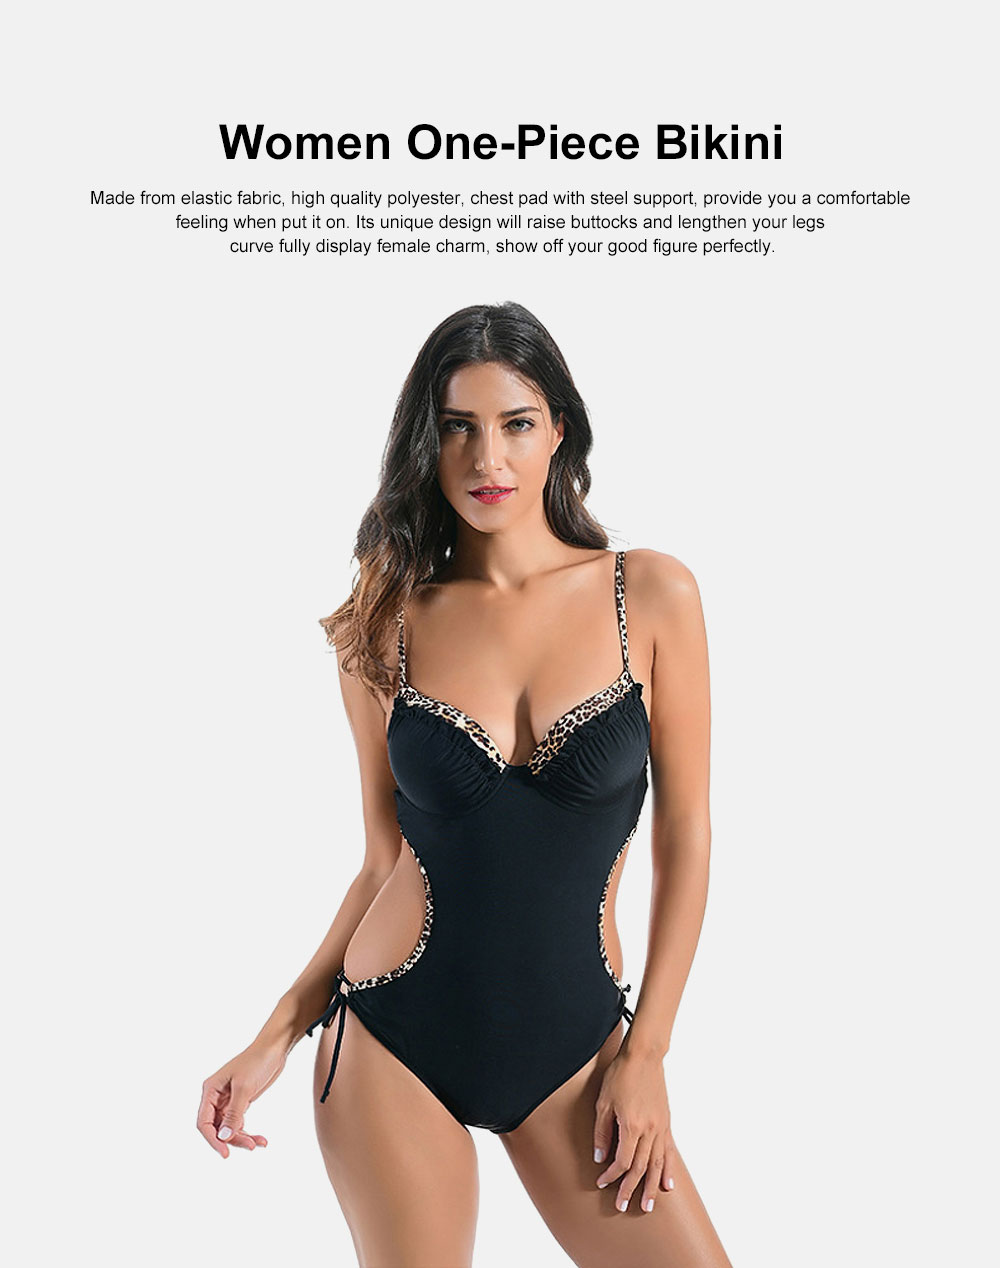 One-Piece Tankini Swimming Suits, Women Beachwear, Bathing Suits, Sexy Halter Swimsuits for Girls 0